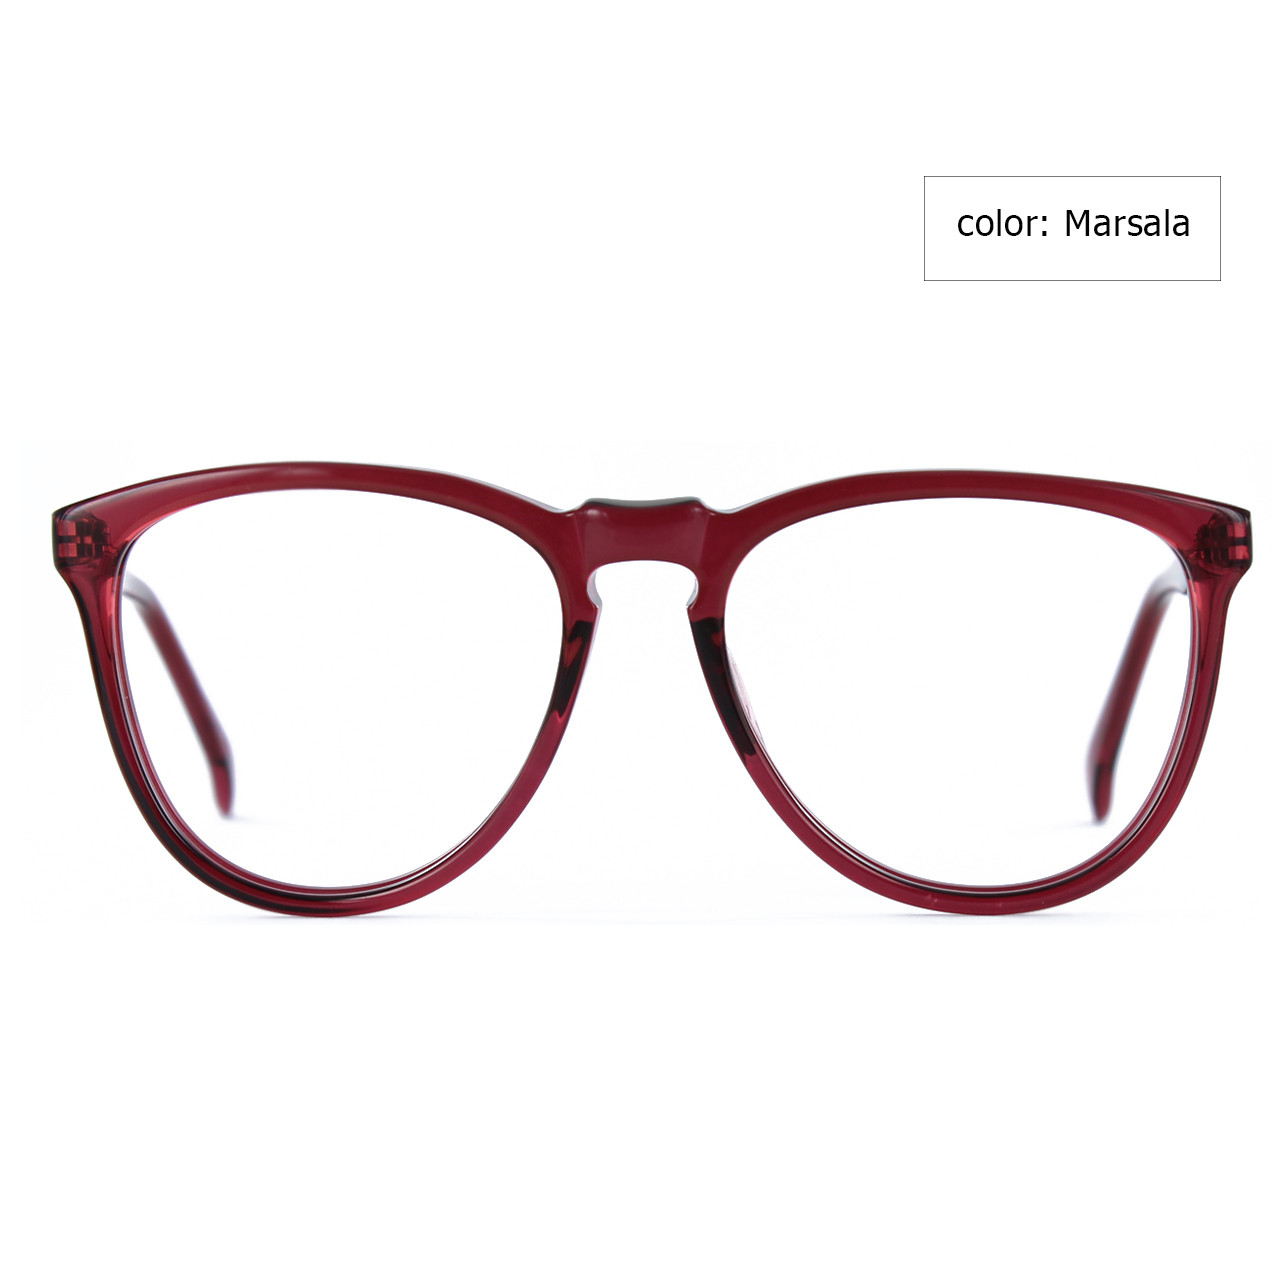 color: Marsala